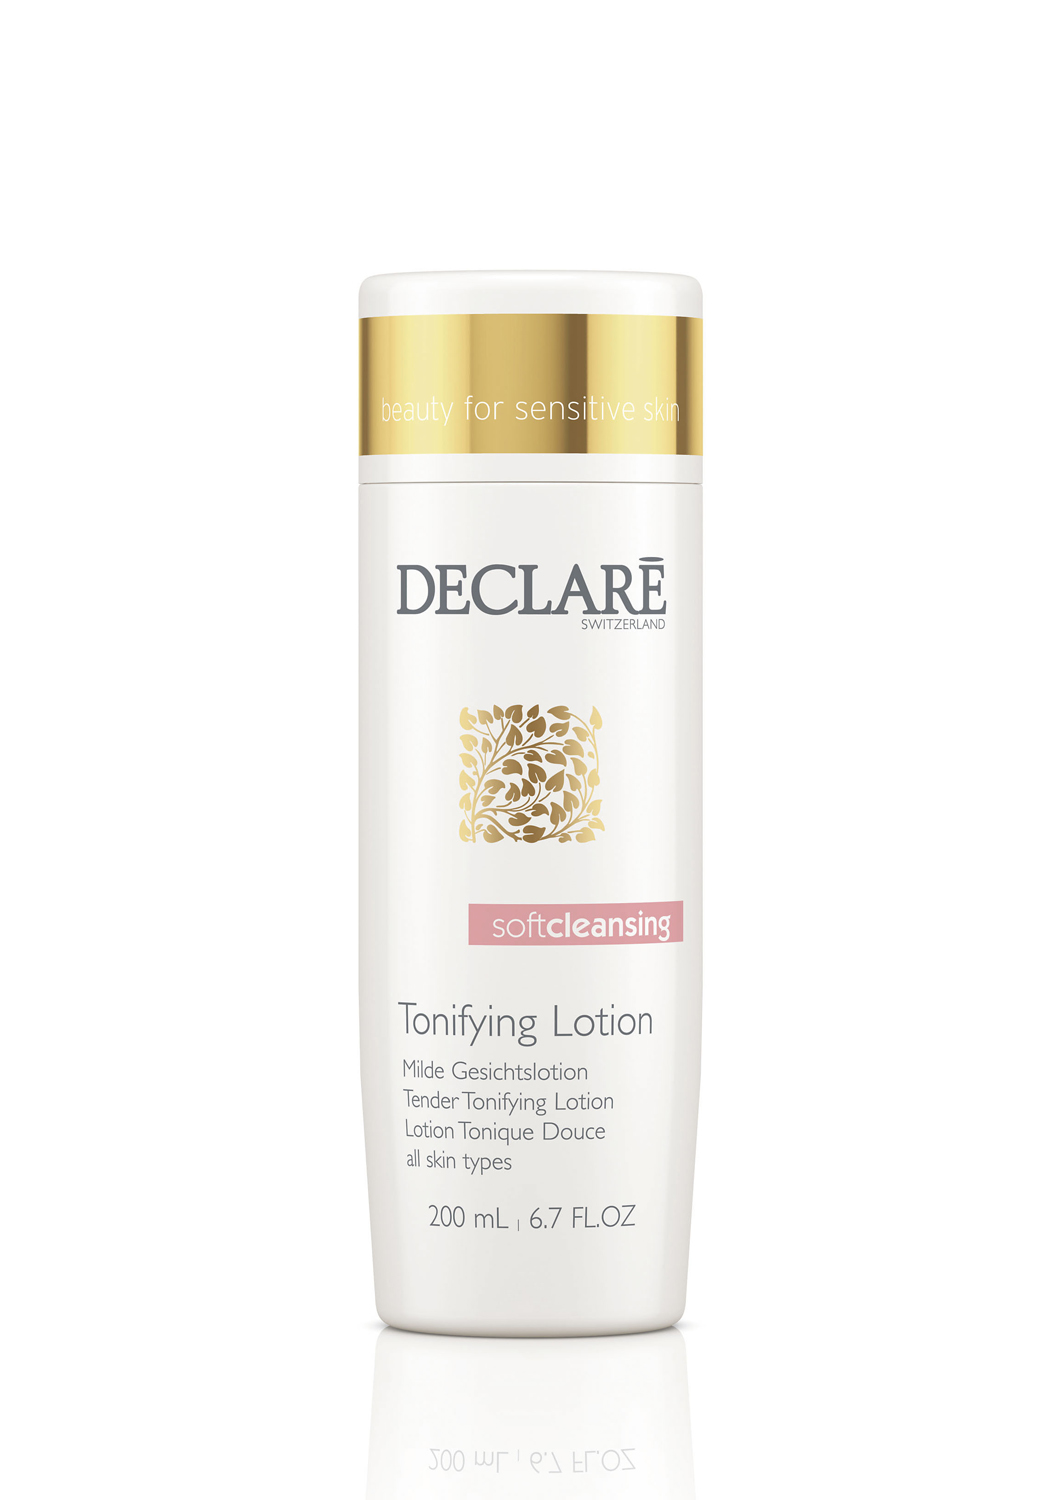 Declaré Soft Cleansing Tender Tonifying Lotion Мягкий очищающий тоник (200 ml) 516